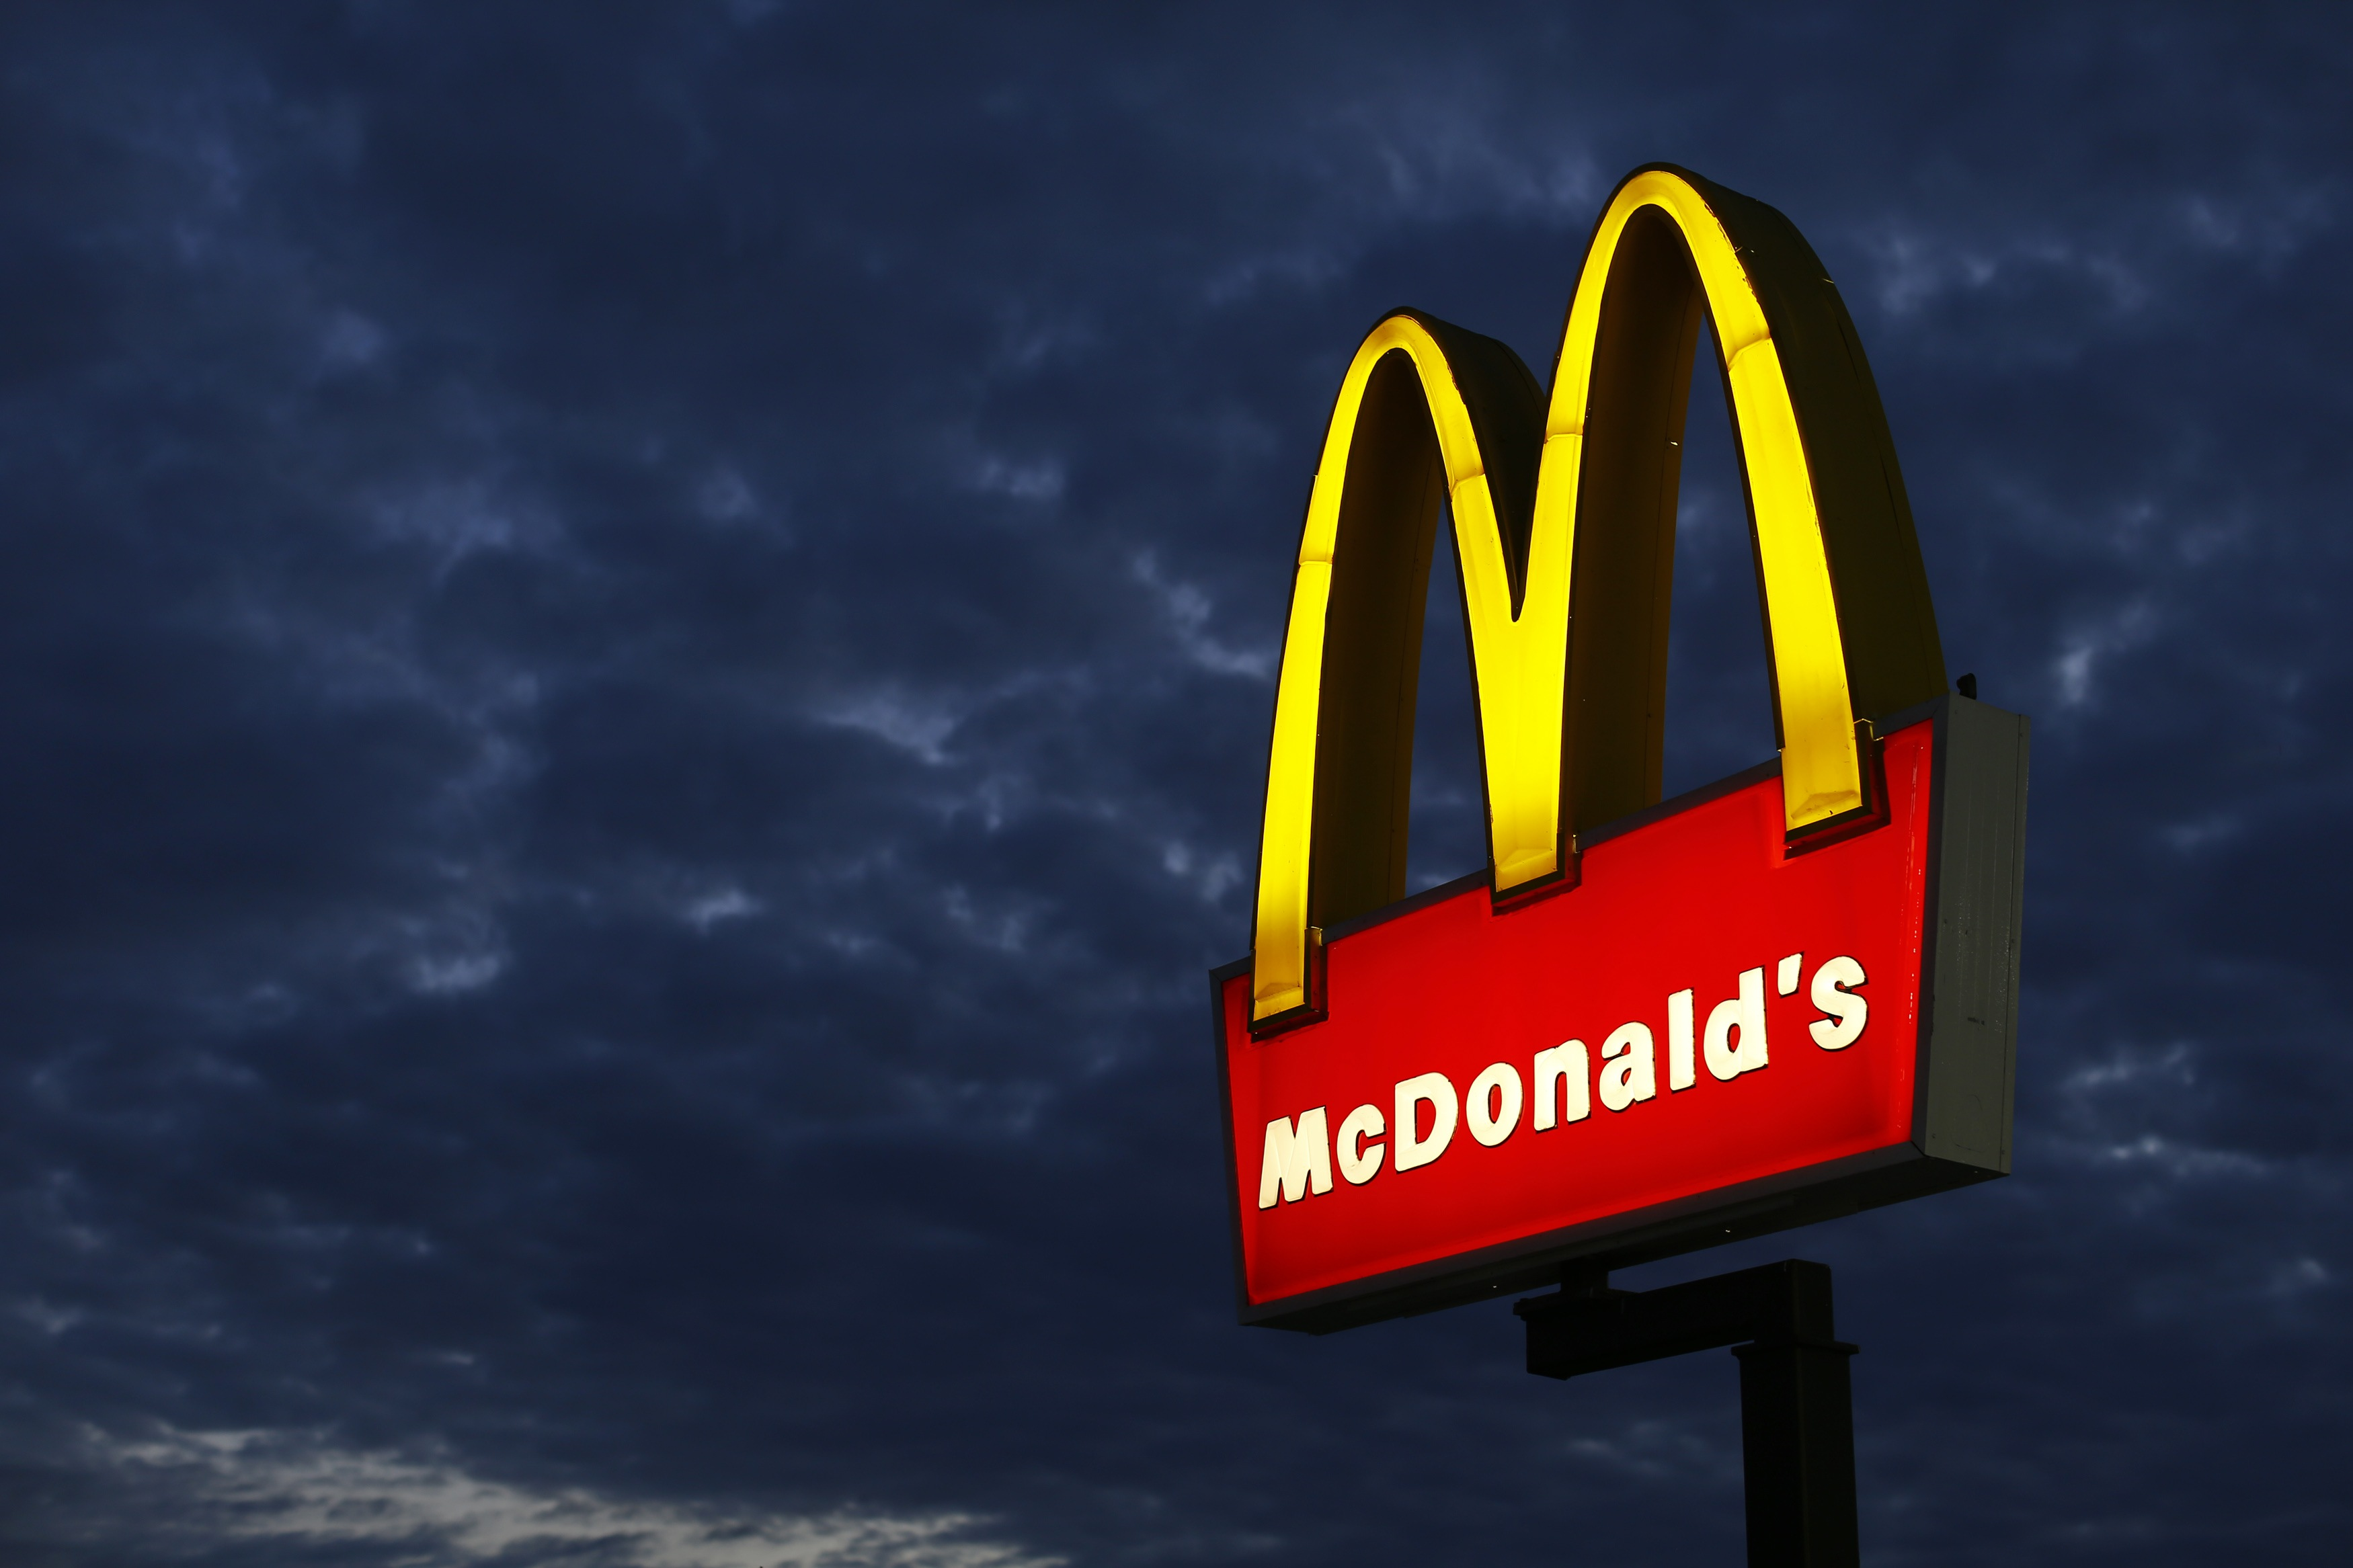 A McDonald's restaurant is pictured in Encinitas, California, in this file photo taken on September 9, 2014. Photo: Reuters